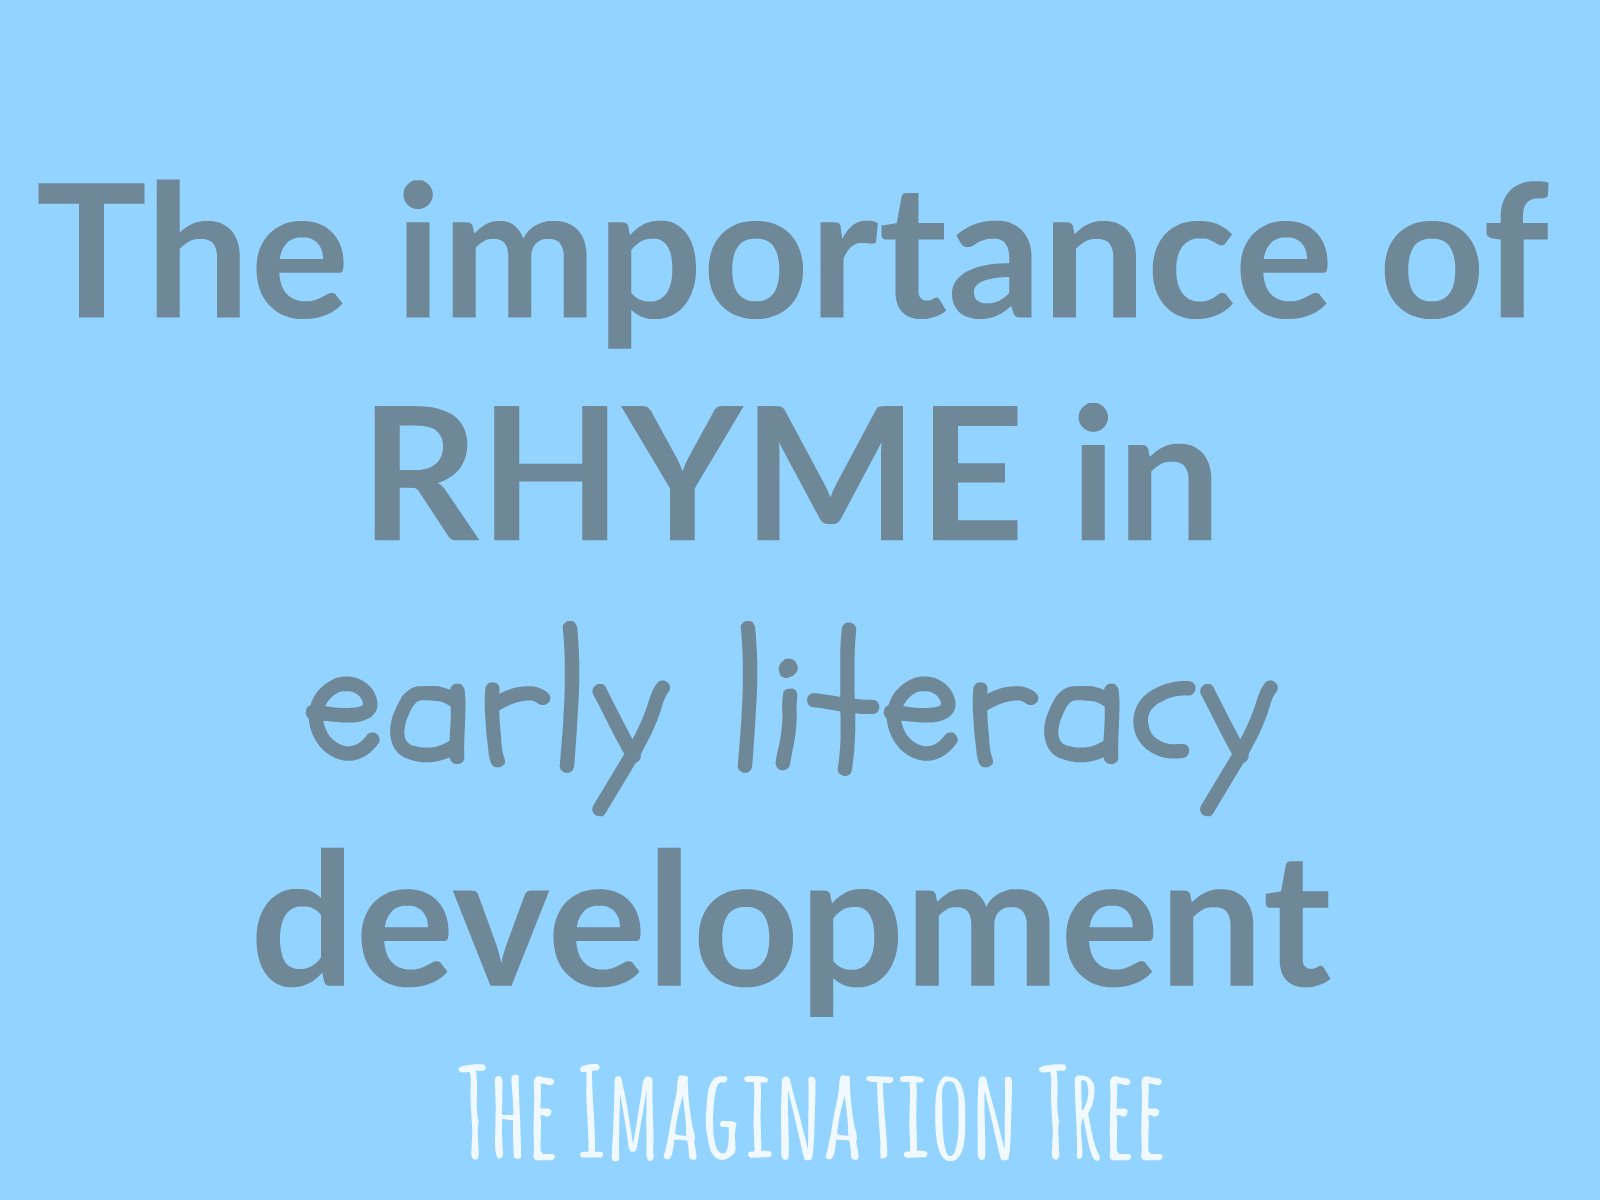 Rhyming Life Quotes The Importance Of Rhyme In Early Literacy Development  The